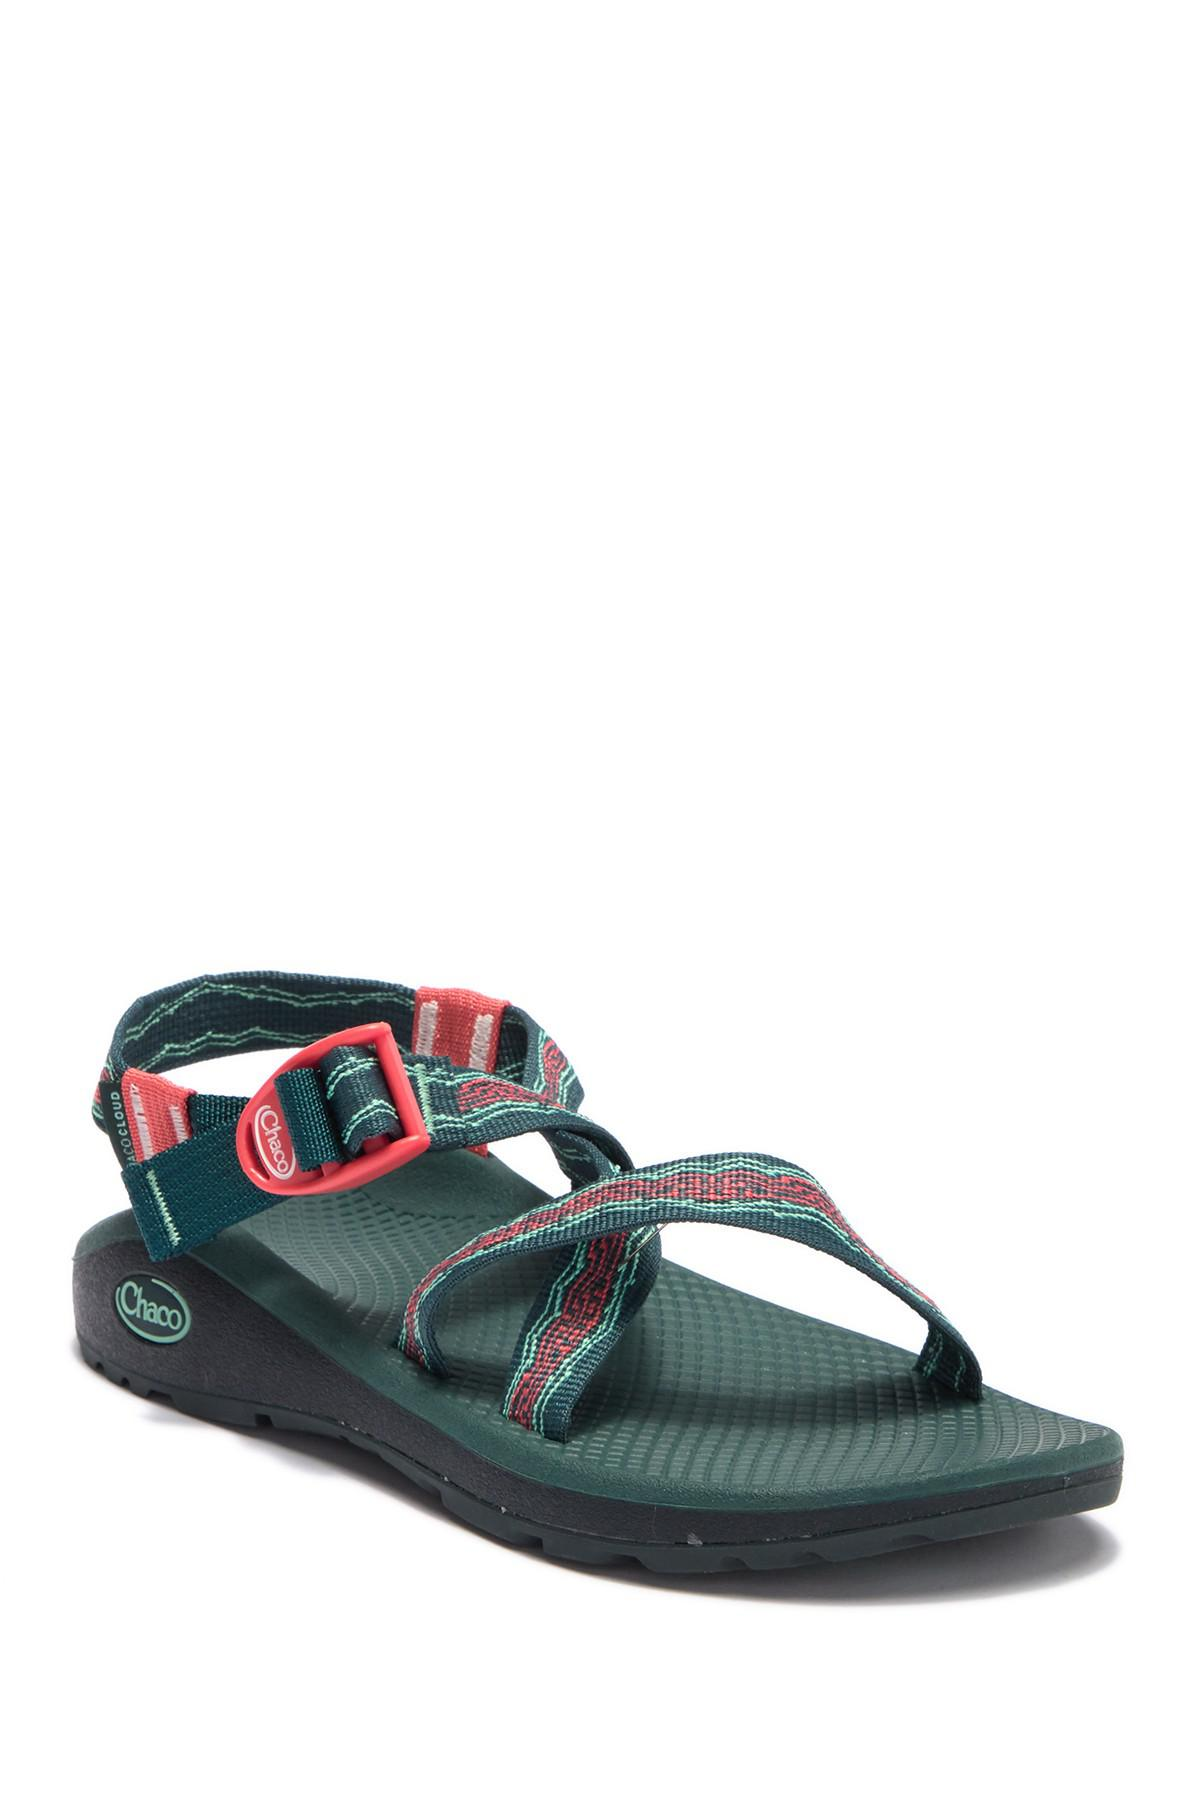 8c49935cded0 Chaco. Women s Z Cloud Sandal.  110  63 From Nordstrom Rack